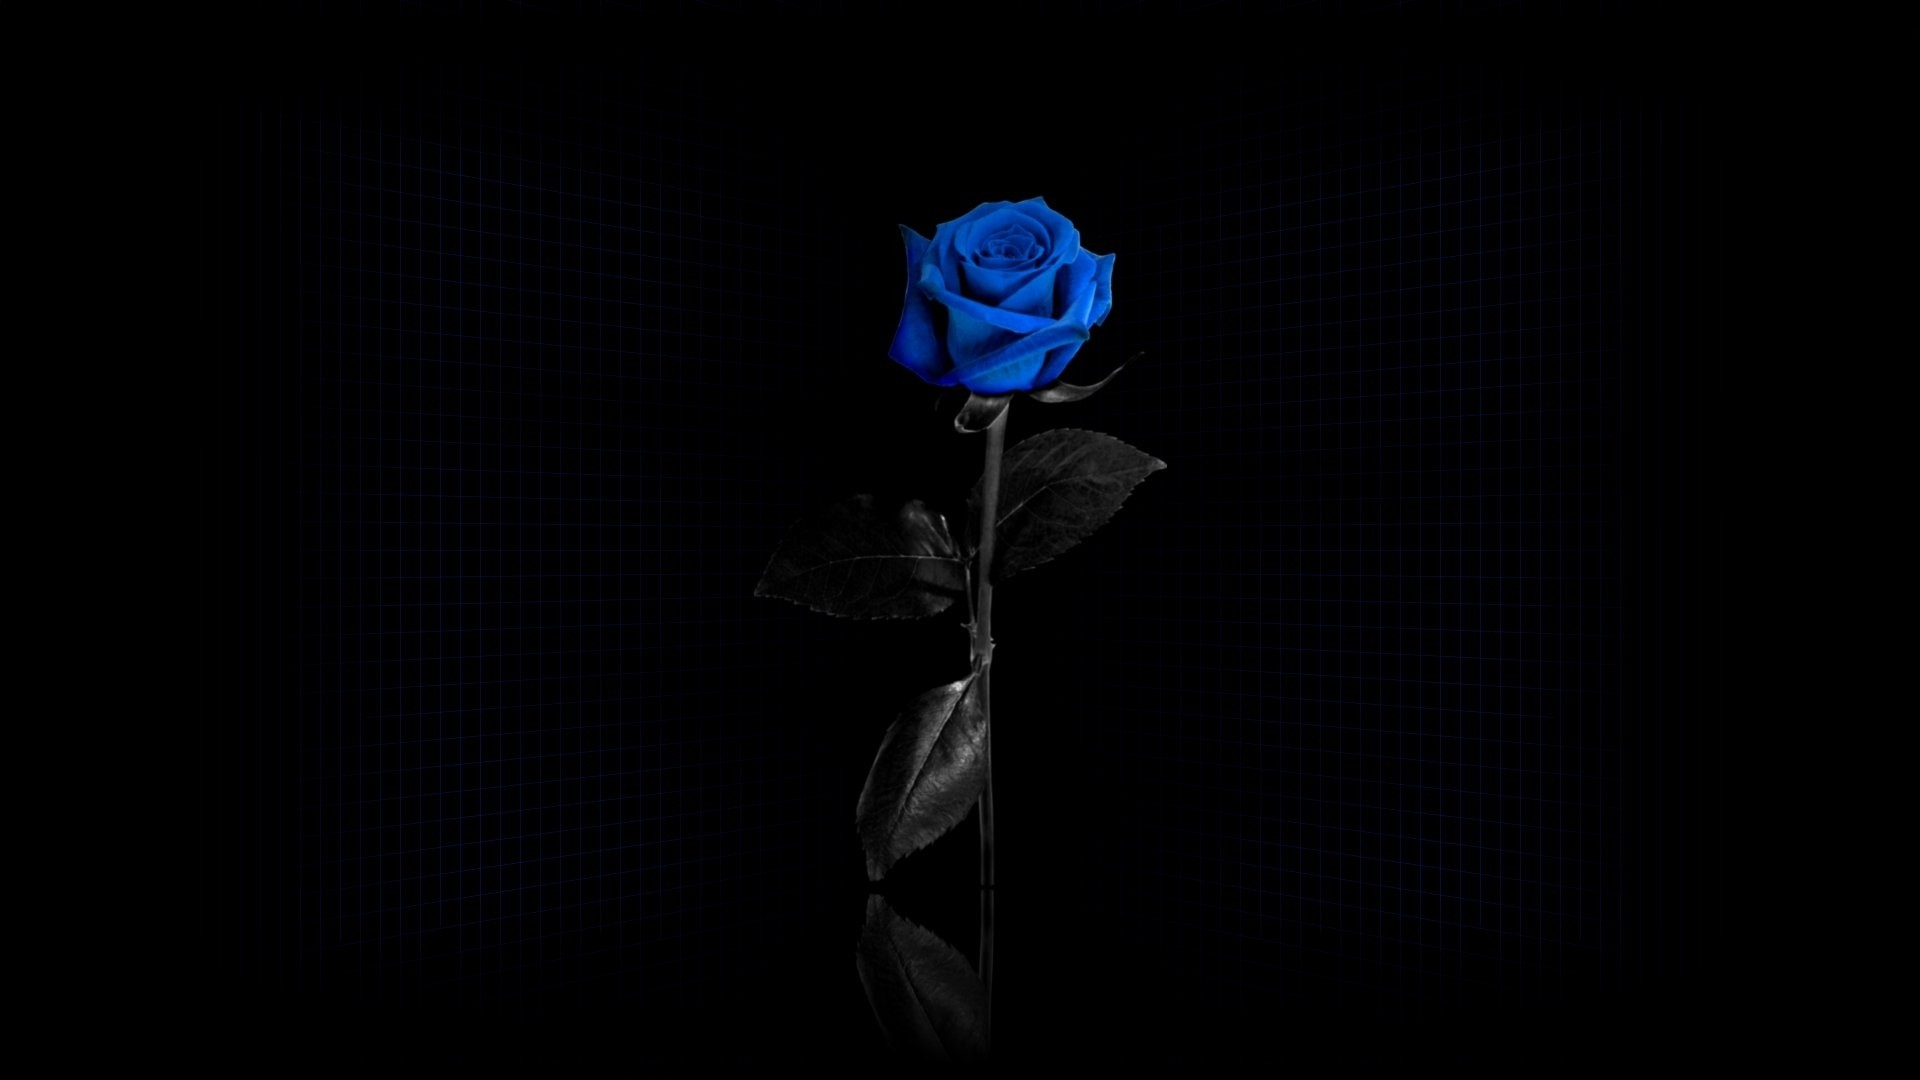 Beautiful blue rose on black background wallpapers and images .